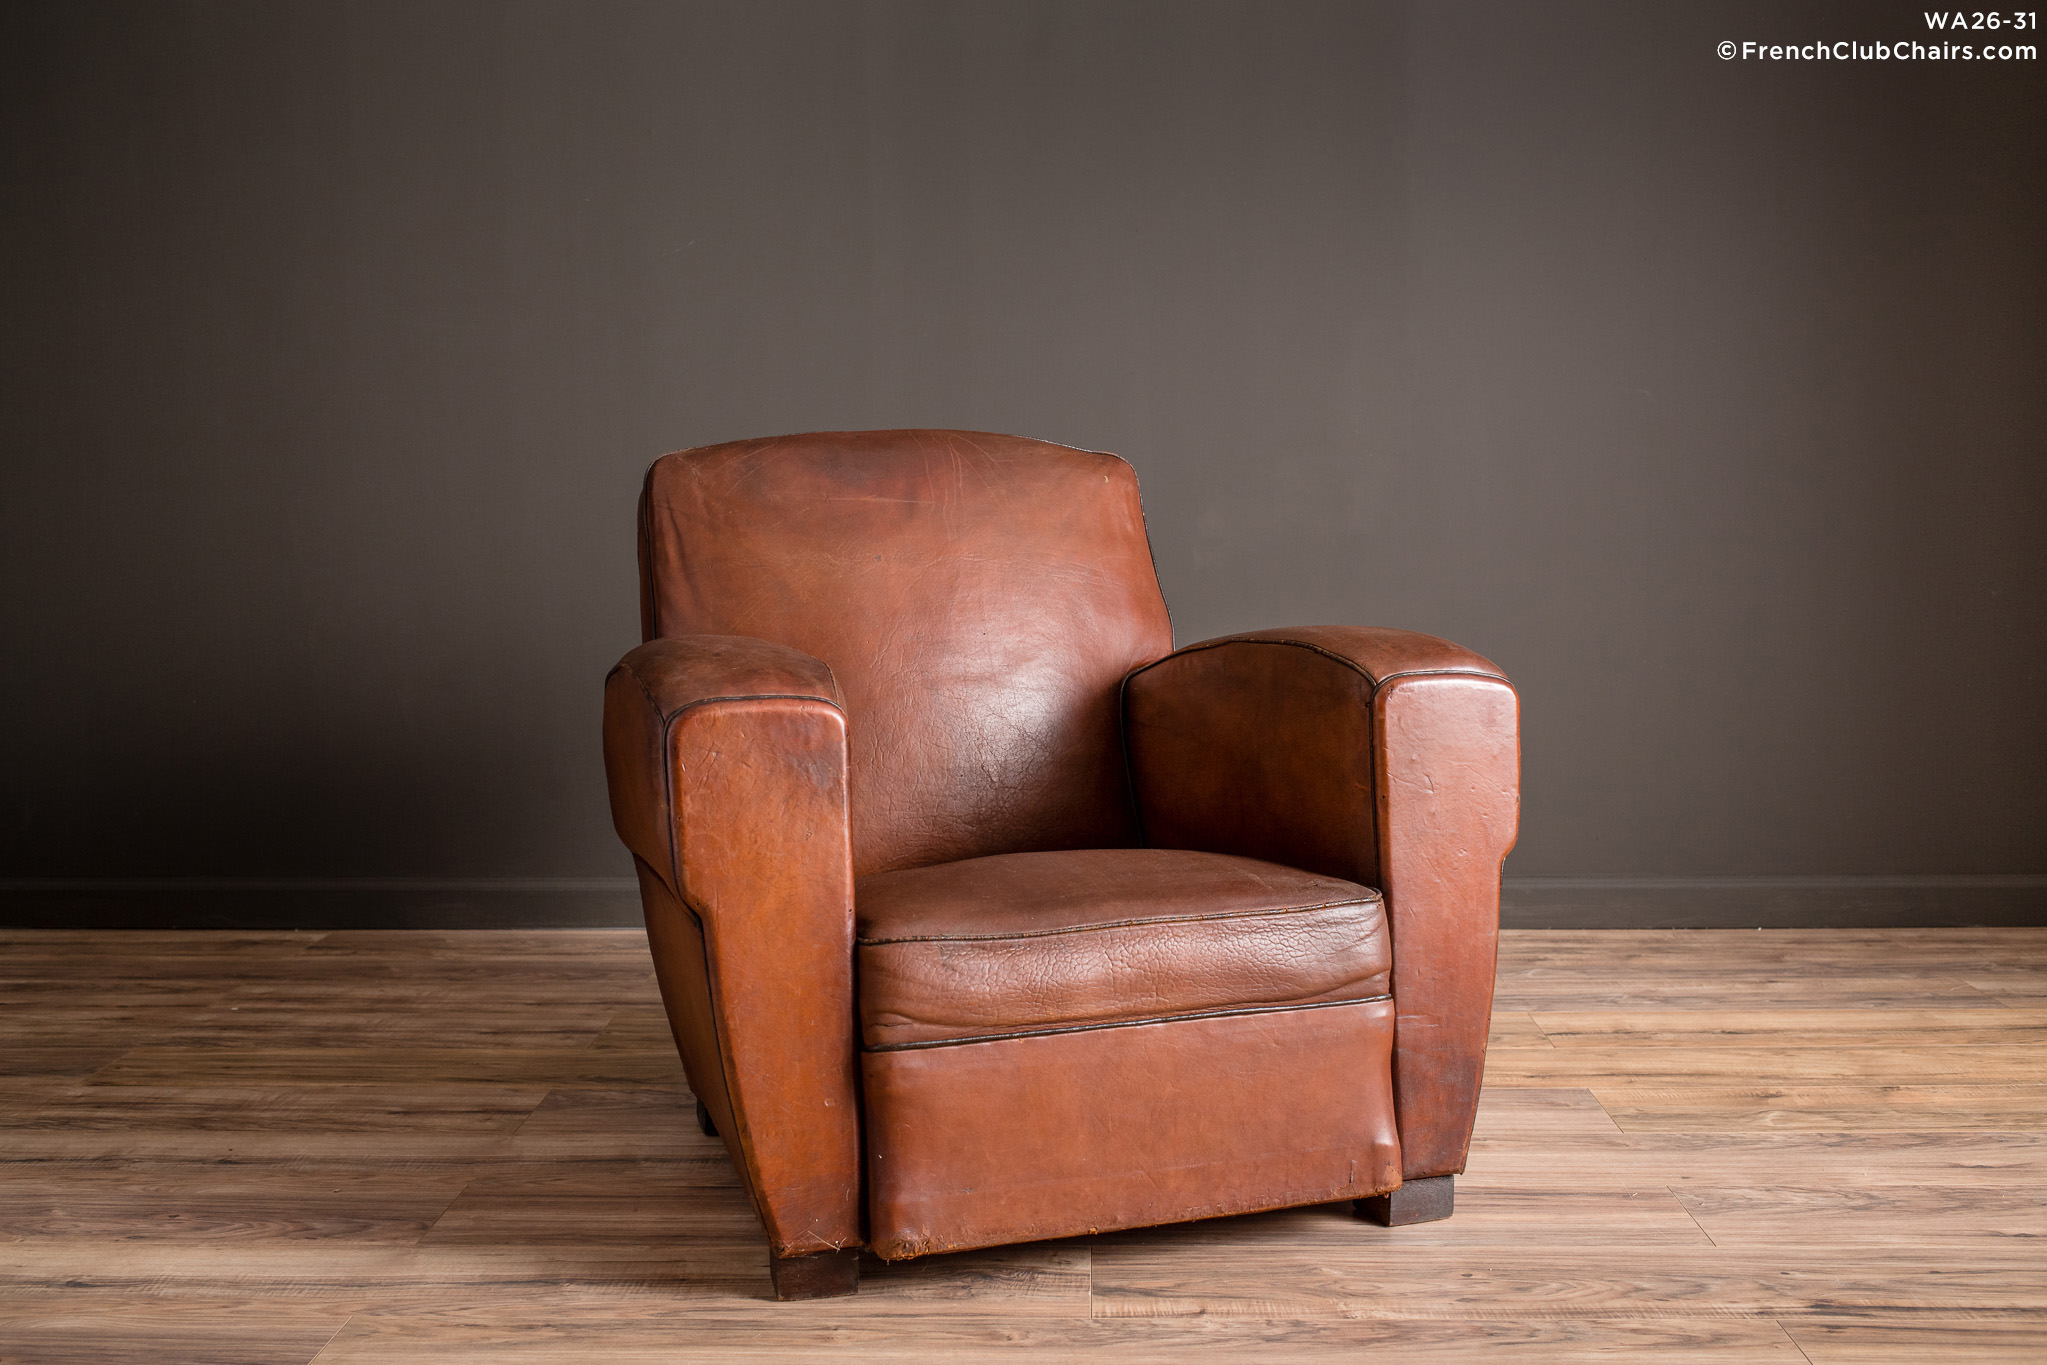 WA_26-31_Lemans_Library_Square_Solo_R_1TQ-v01-williams-antiks-leather-french-club-chair-wa_fcccom